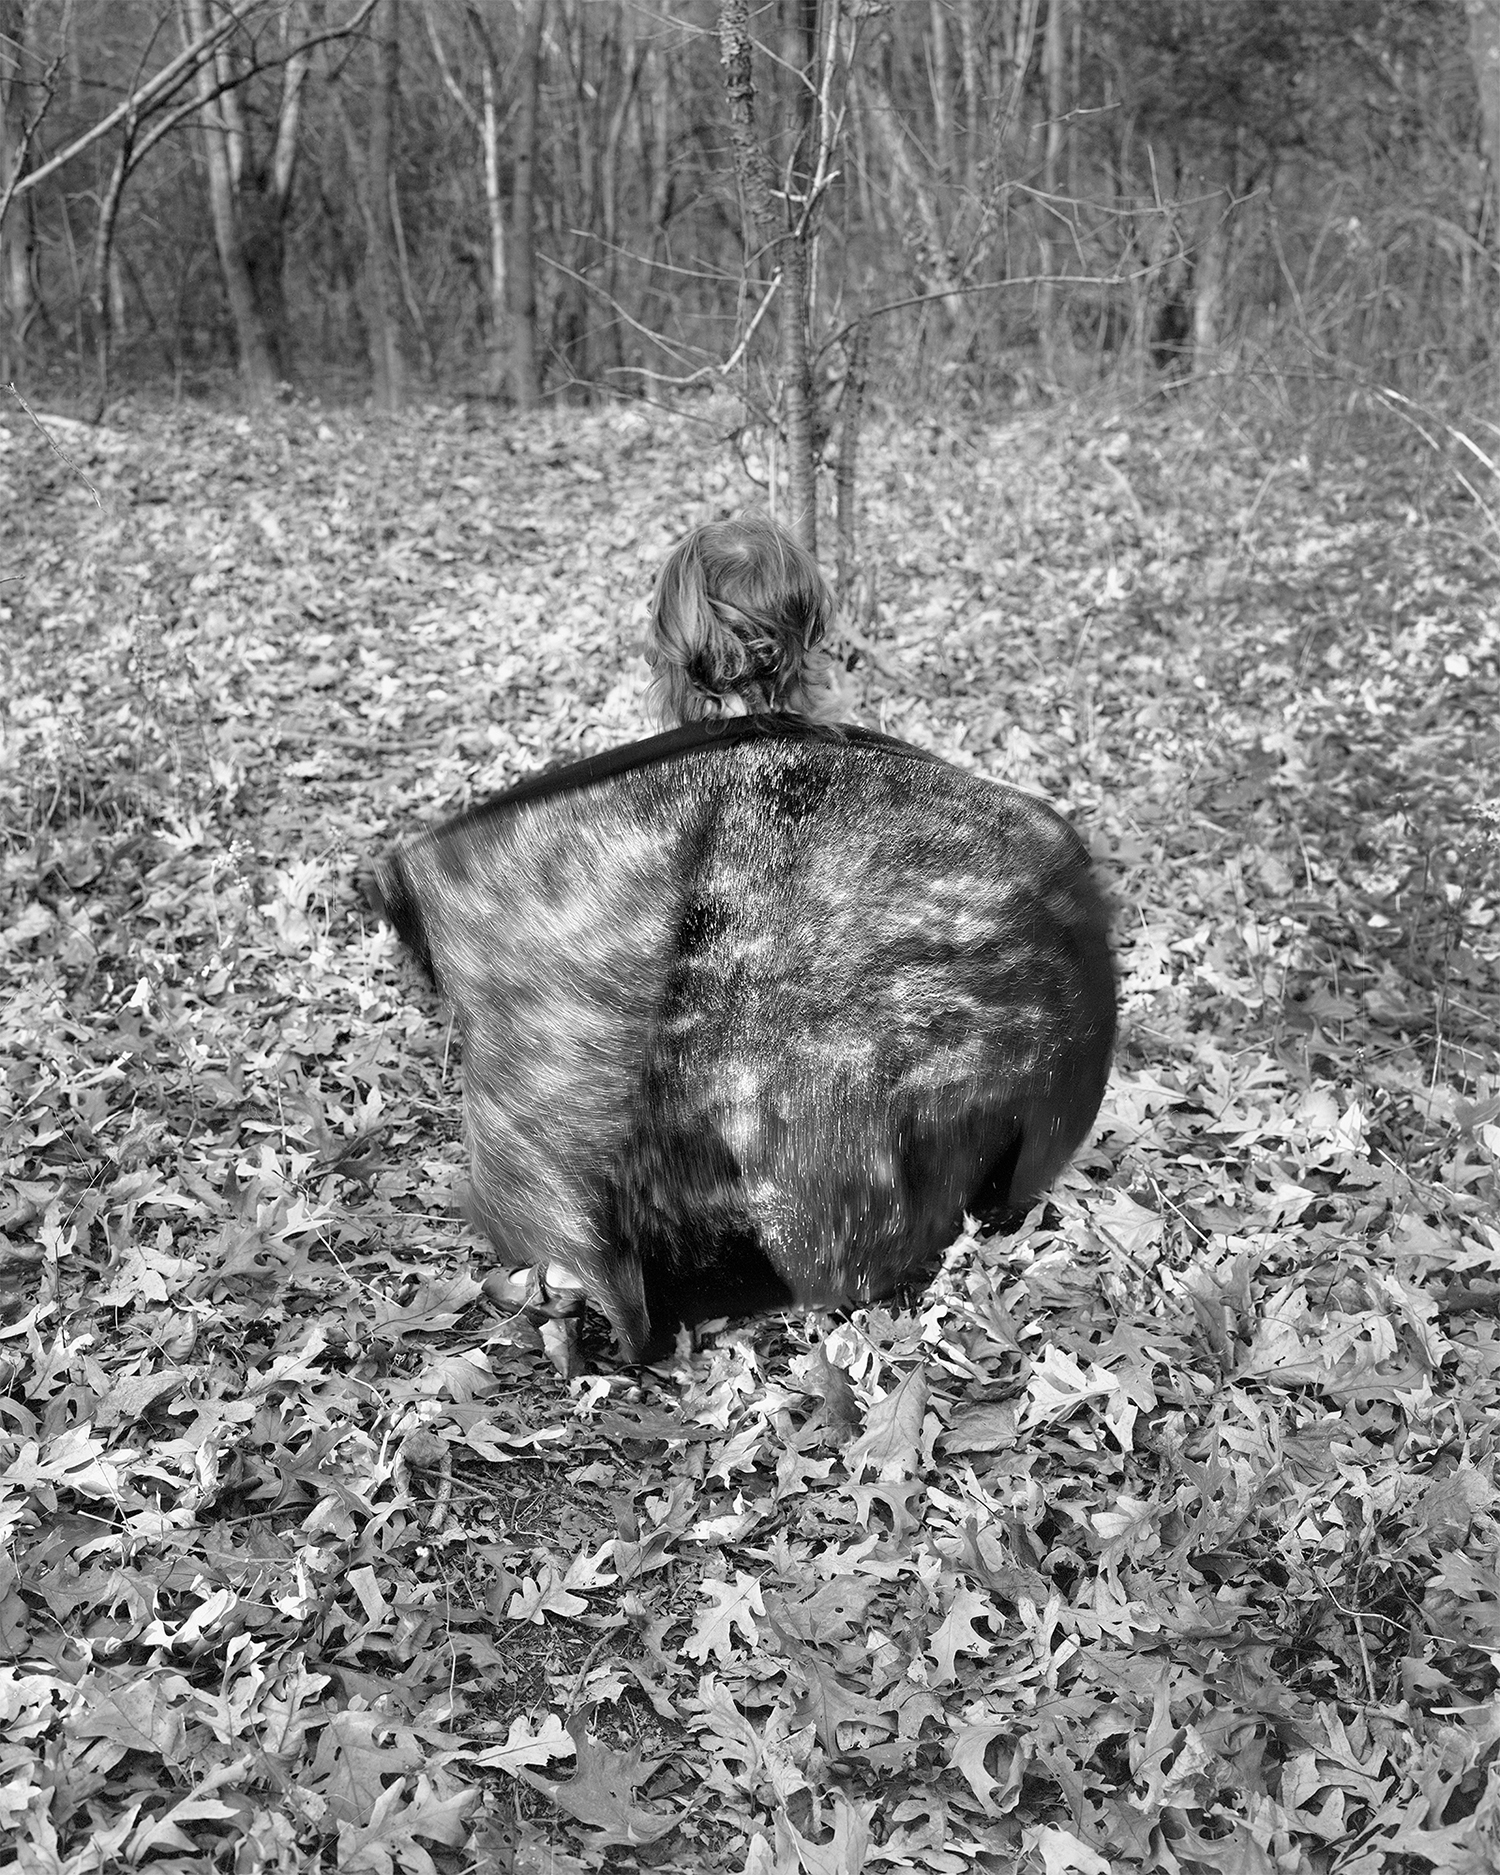 Scott Alario,   Sparkle Fur, Autumn Spell,  2011, Archival pigment print mounted to rag board, 23 3/4 x 19 inches